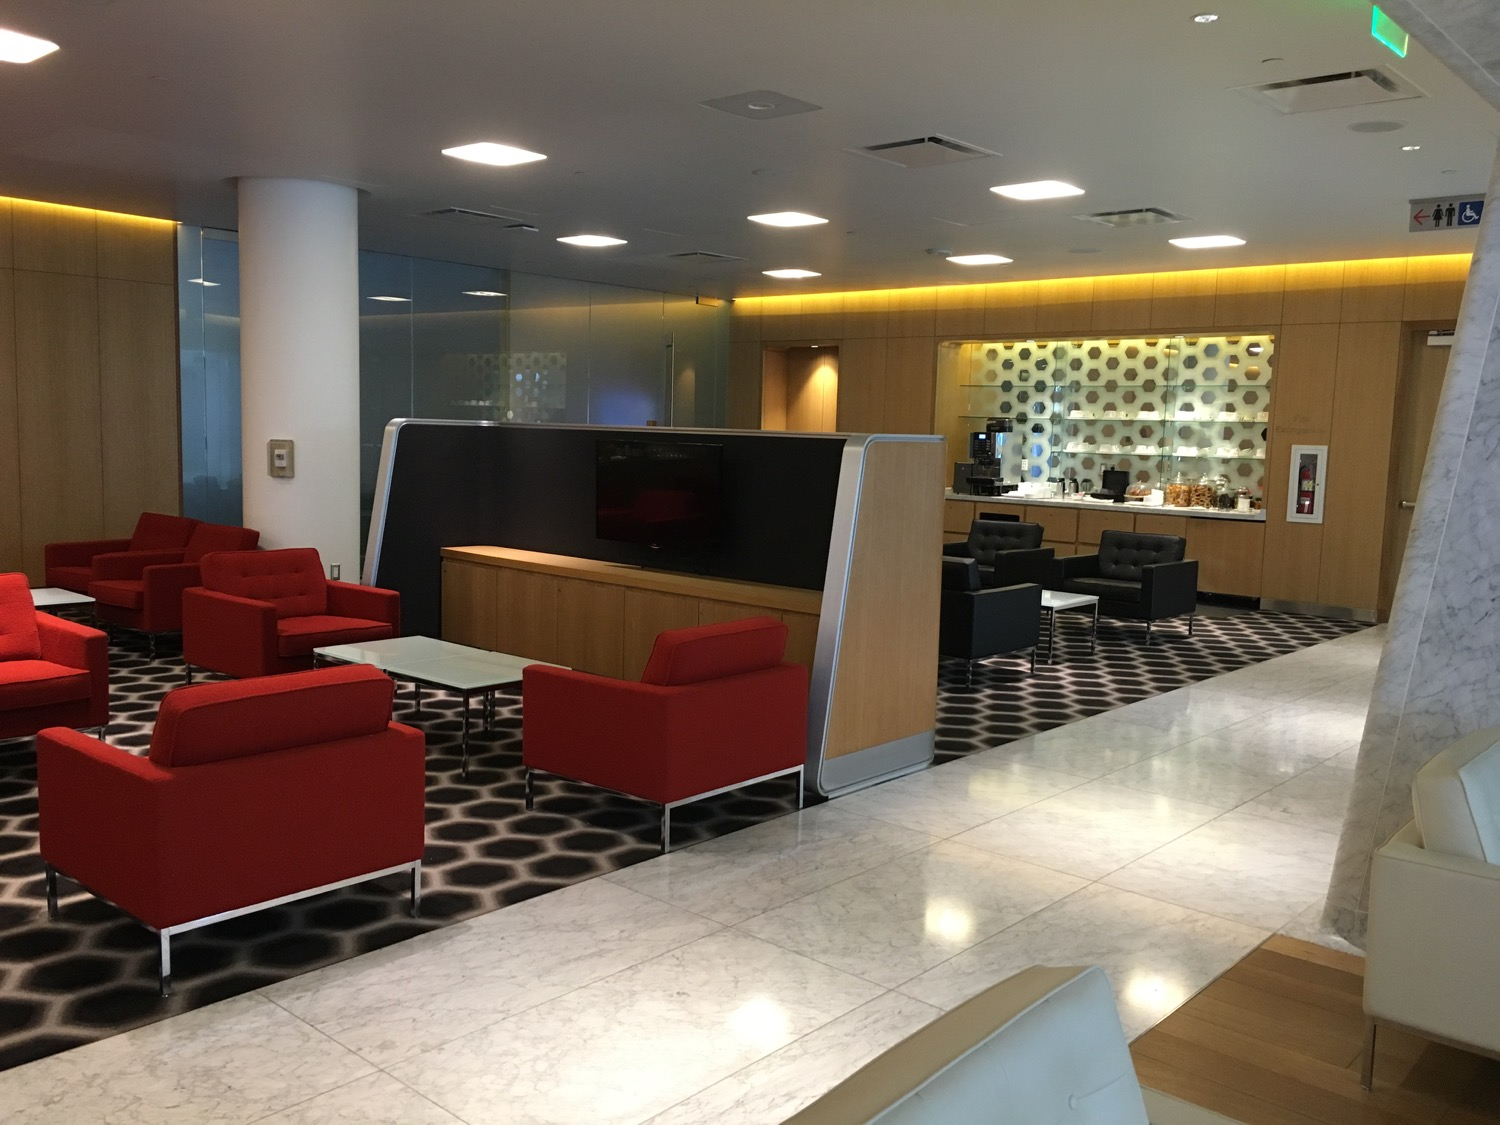 4 und 5 Qantas FirstClass Lounge Sessel - 2